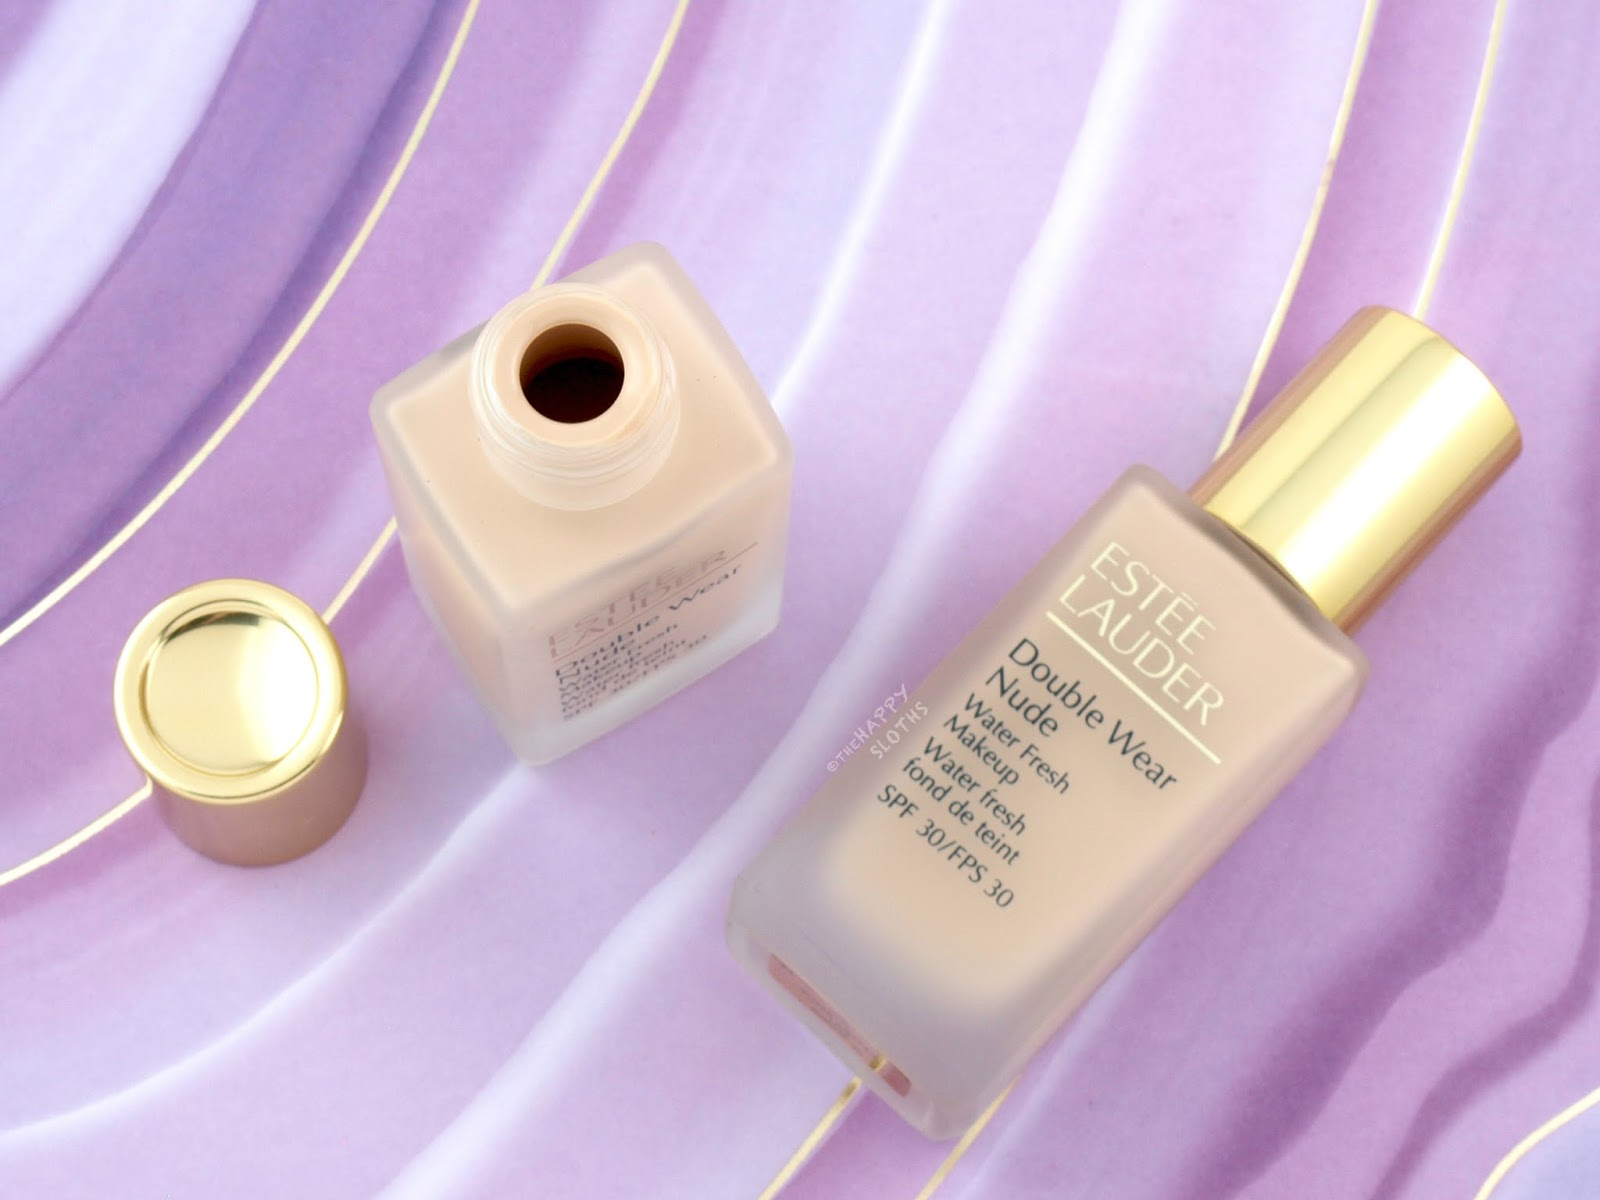 Estee Lauder Double Wear Nude Water Fresh Makeup: Review and Swatches